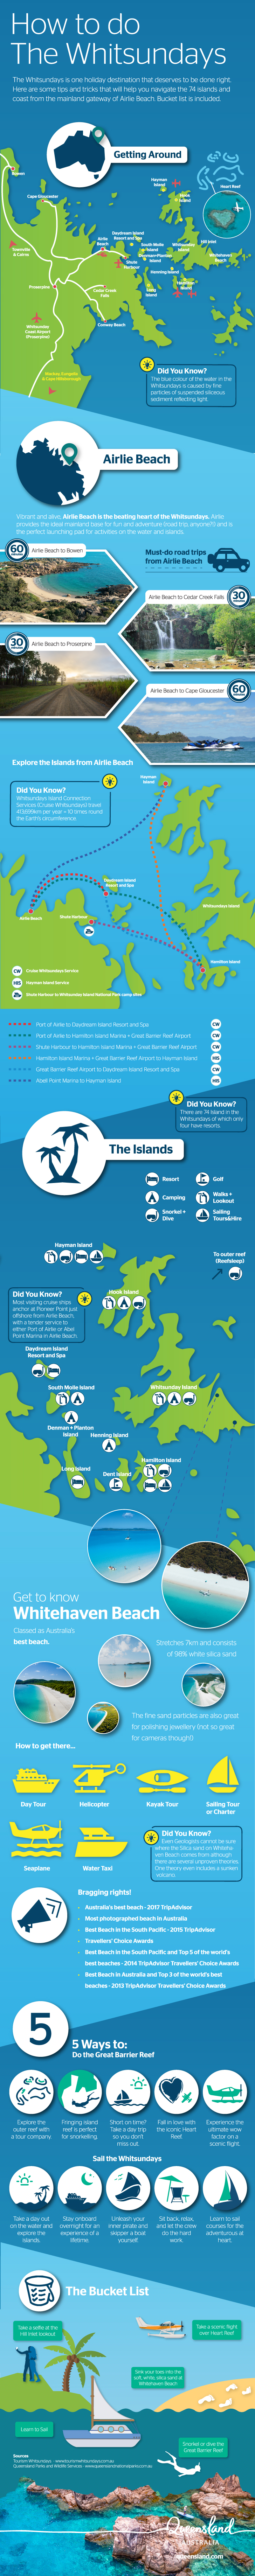 How to do the Whitsundays Infographic